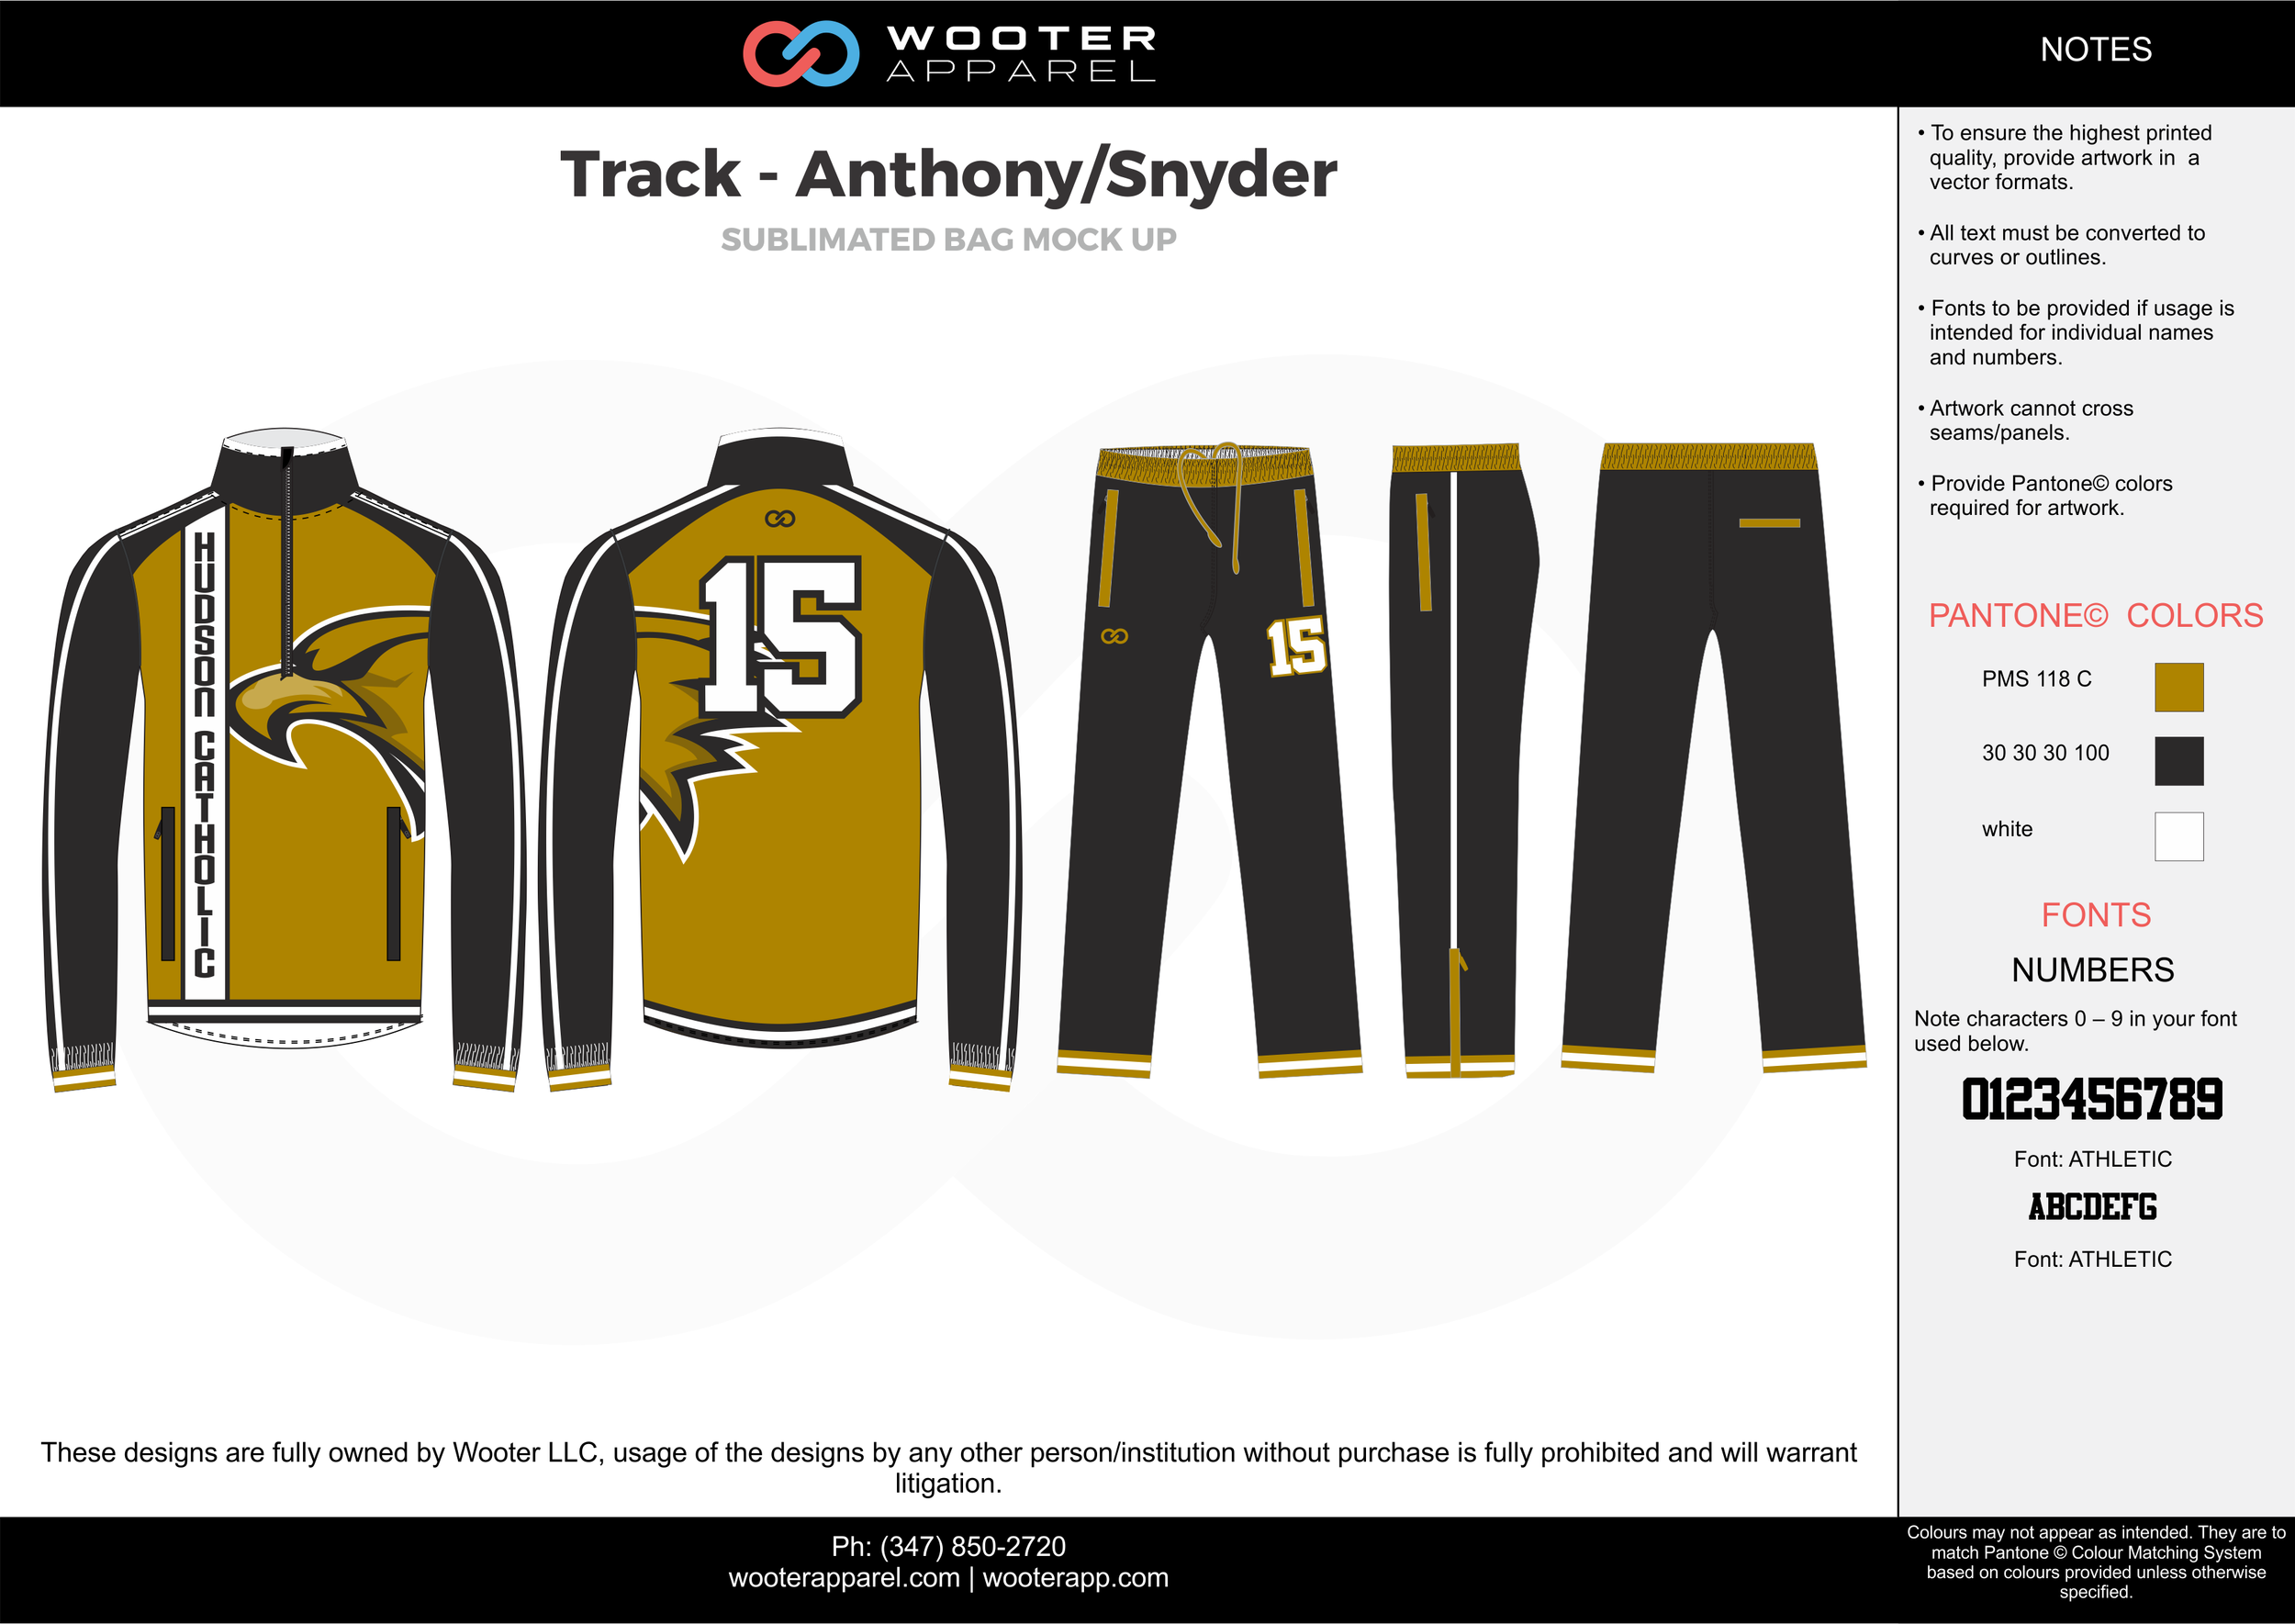 2017-12-22 Track - AnthonySnyder 1.png